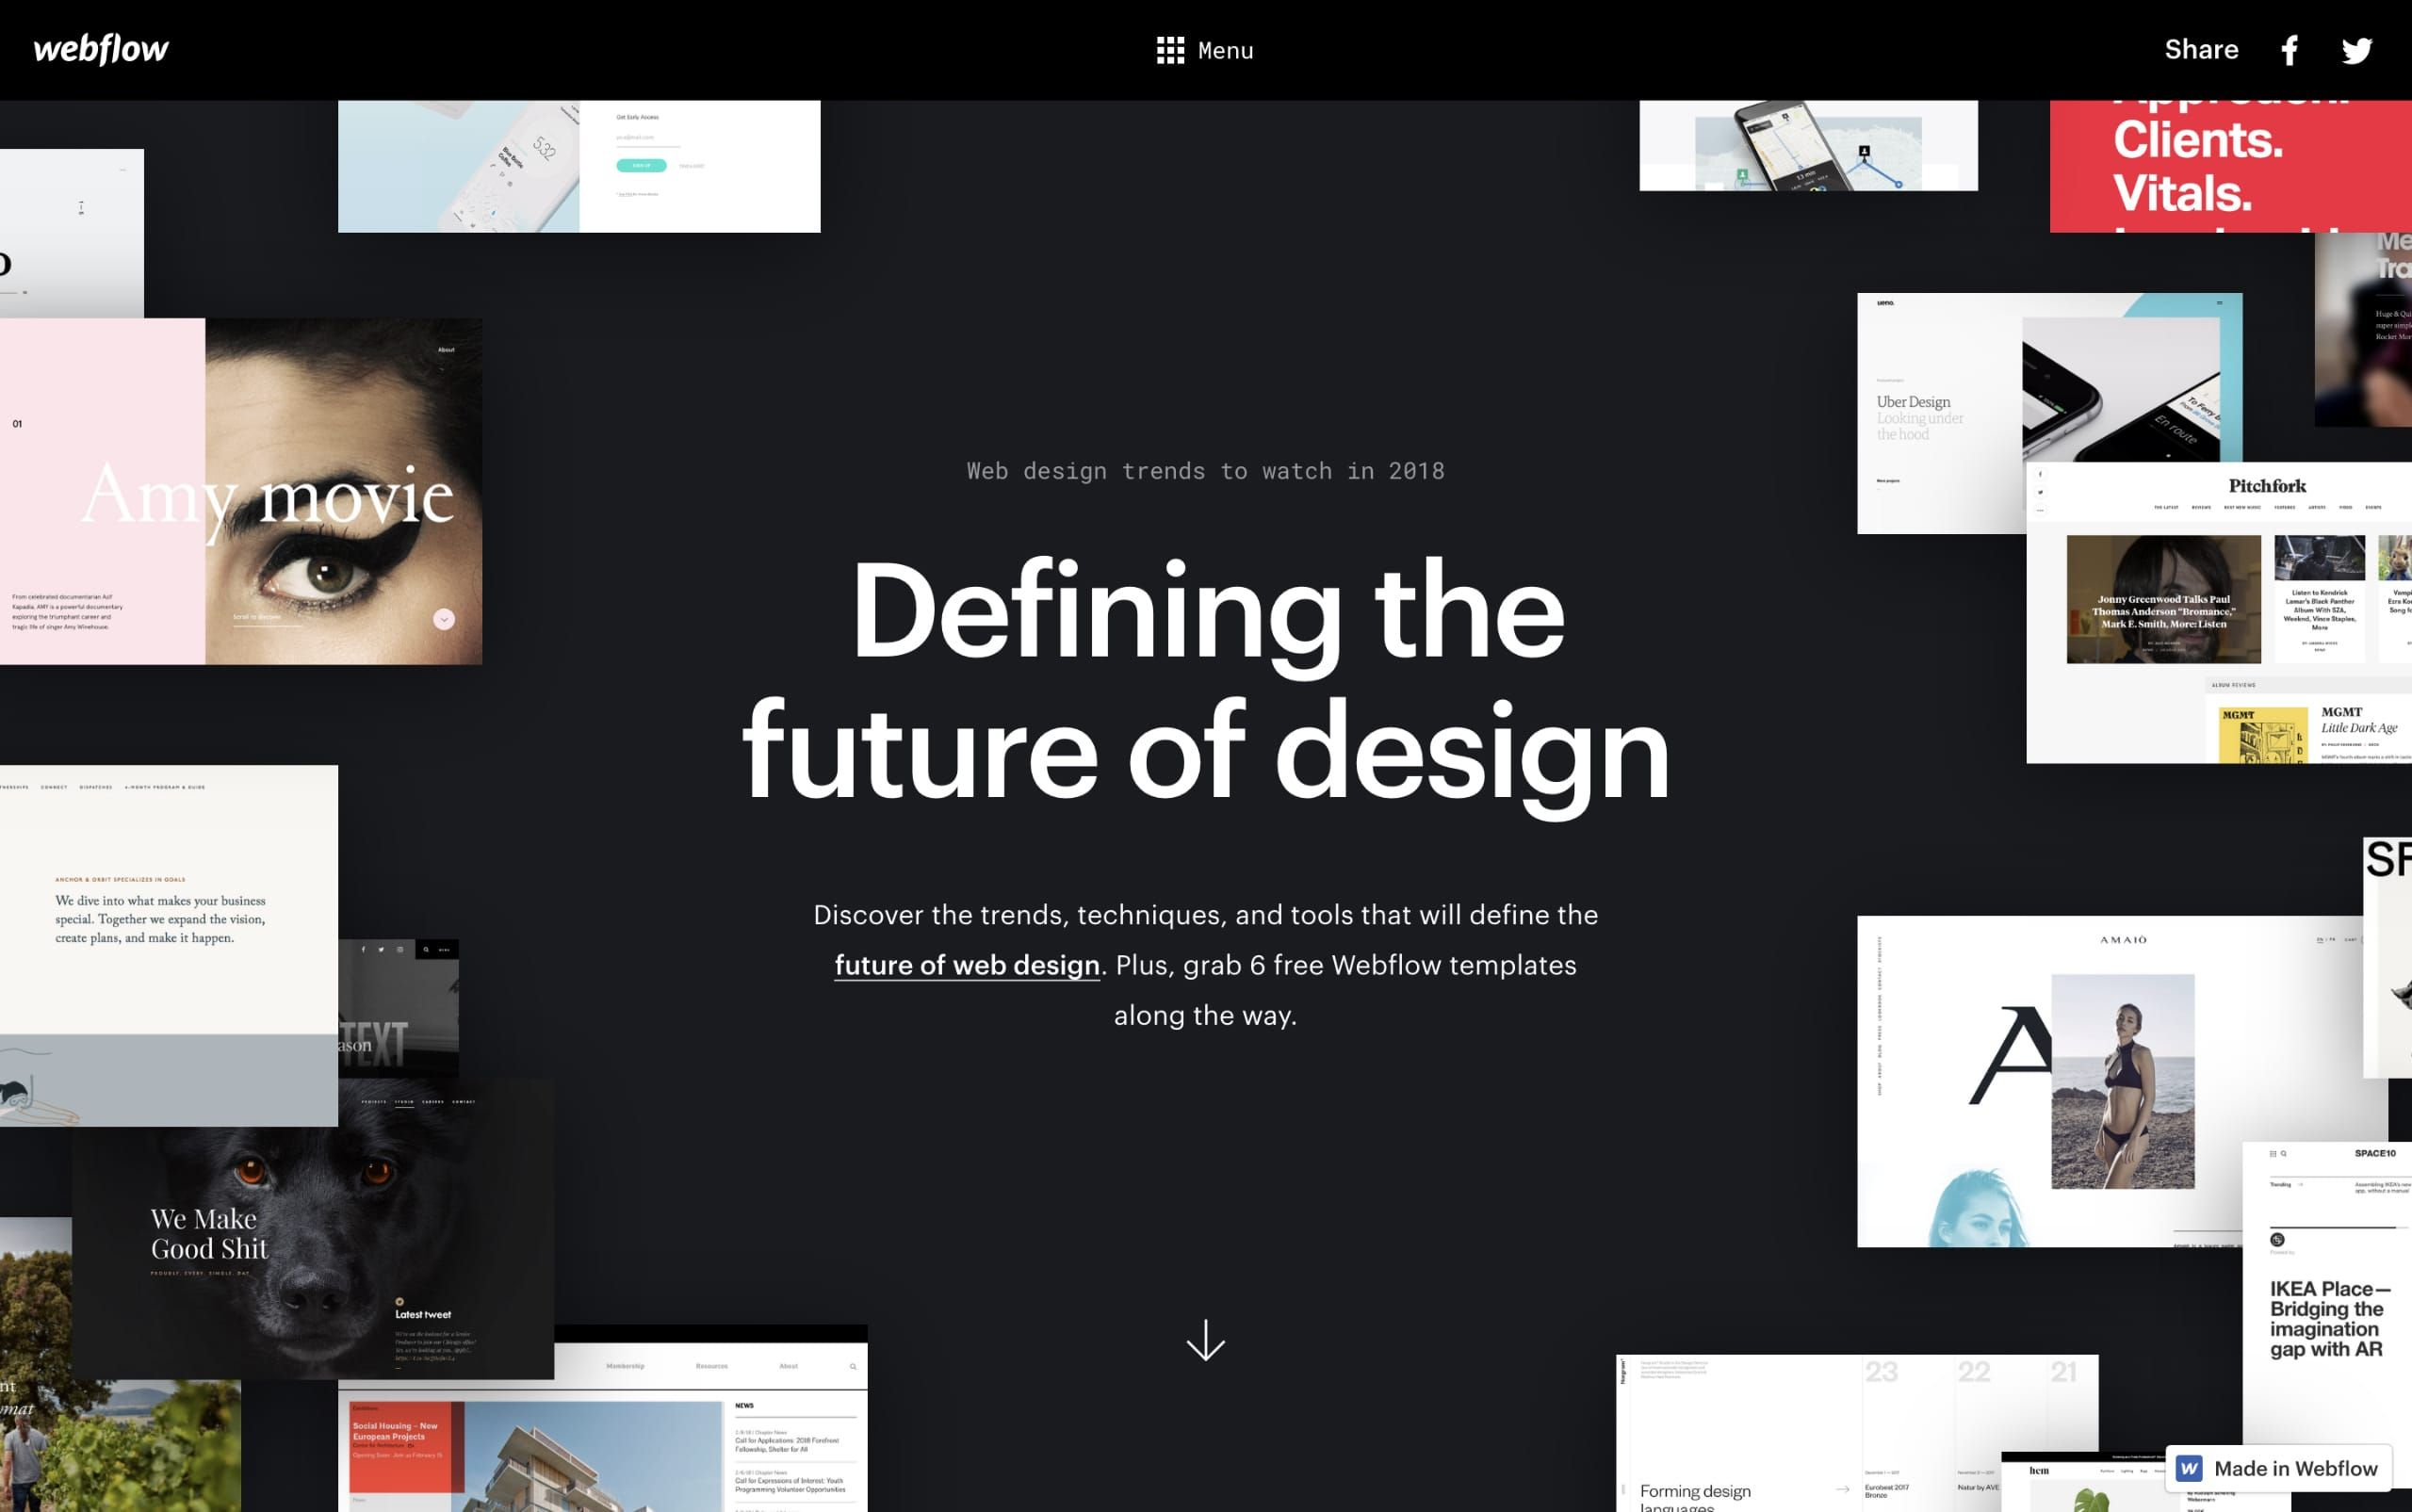 Excellent One Page Website By Webflow Curating Web Design Trends To Watch In 2018 Each Section Background Is Designed Design Trends 2018 Design Trends Design